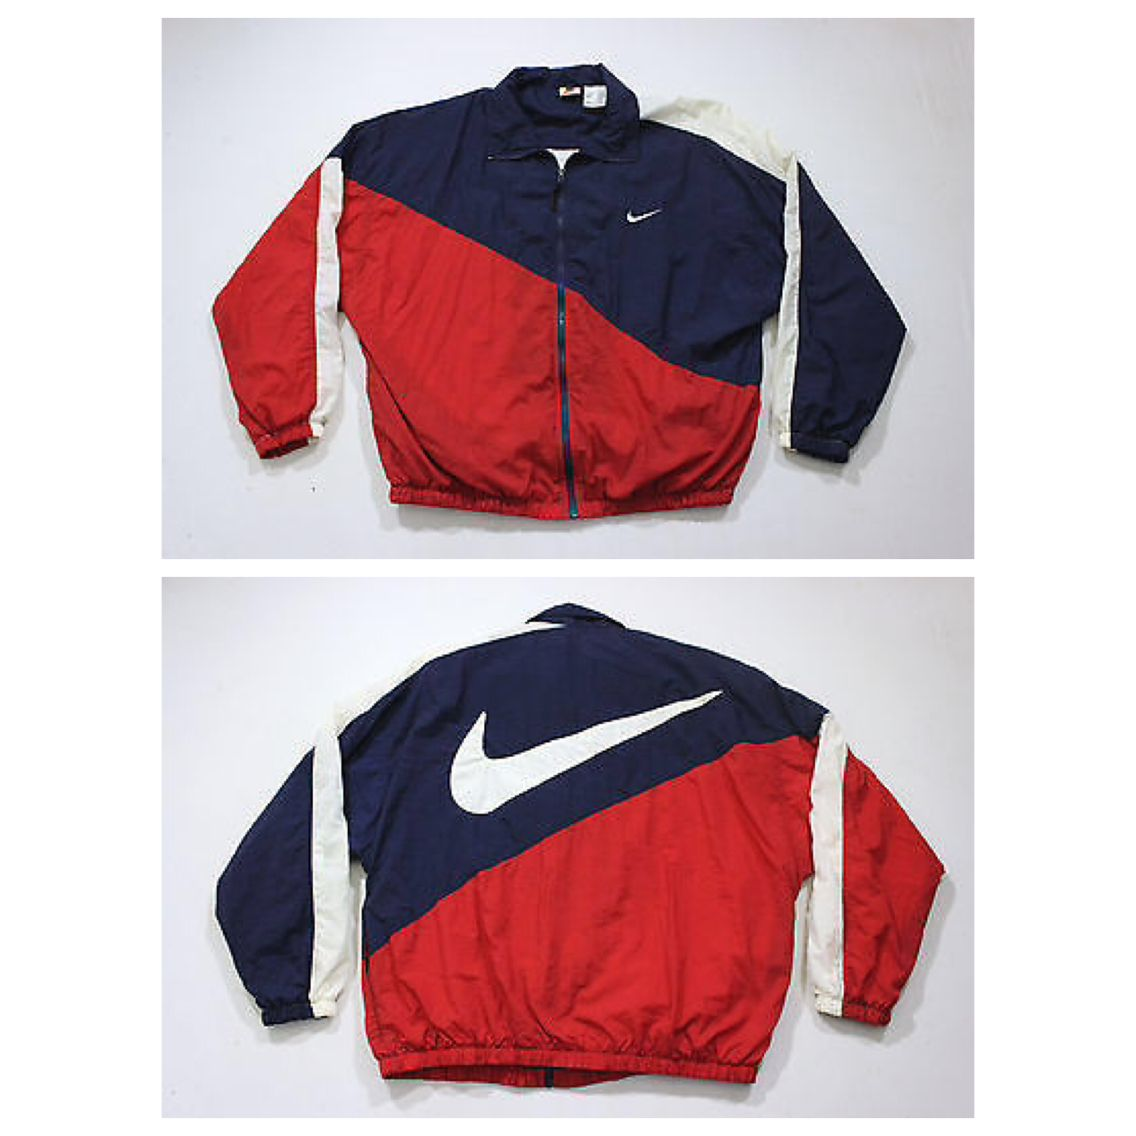 NIKE Windbreaker Jacket Vintage 90's Nylon Shell Zip Jacket Striped Color Block Nike Sportswear Embroidered L Usa